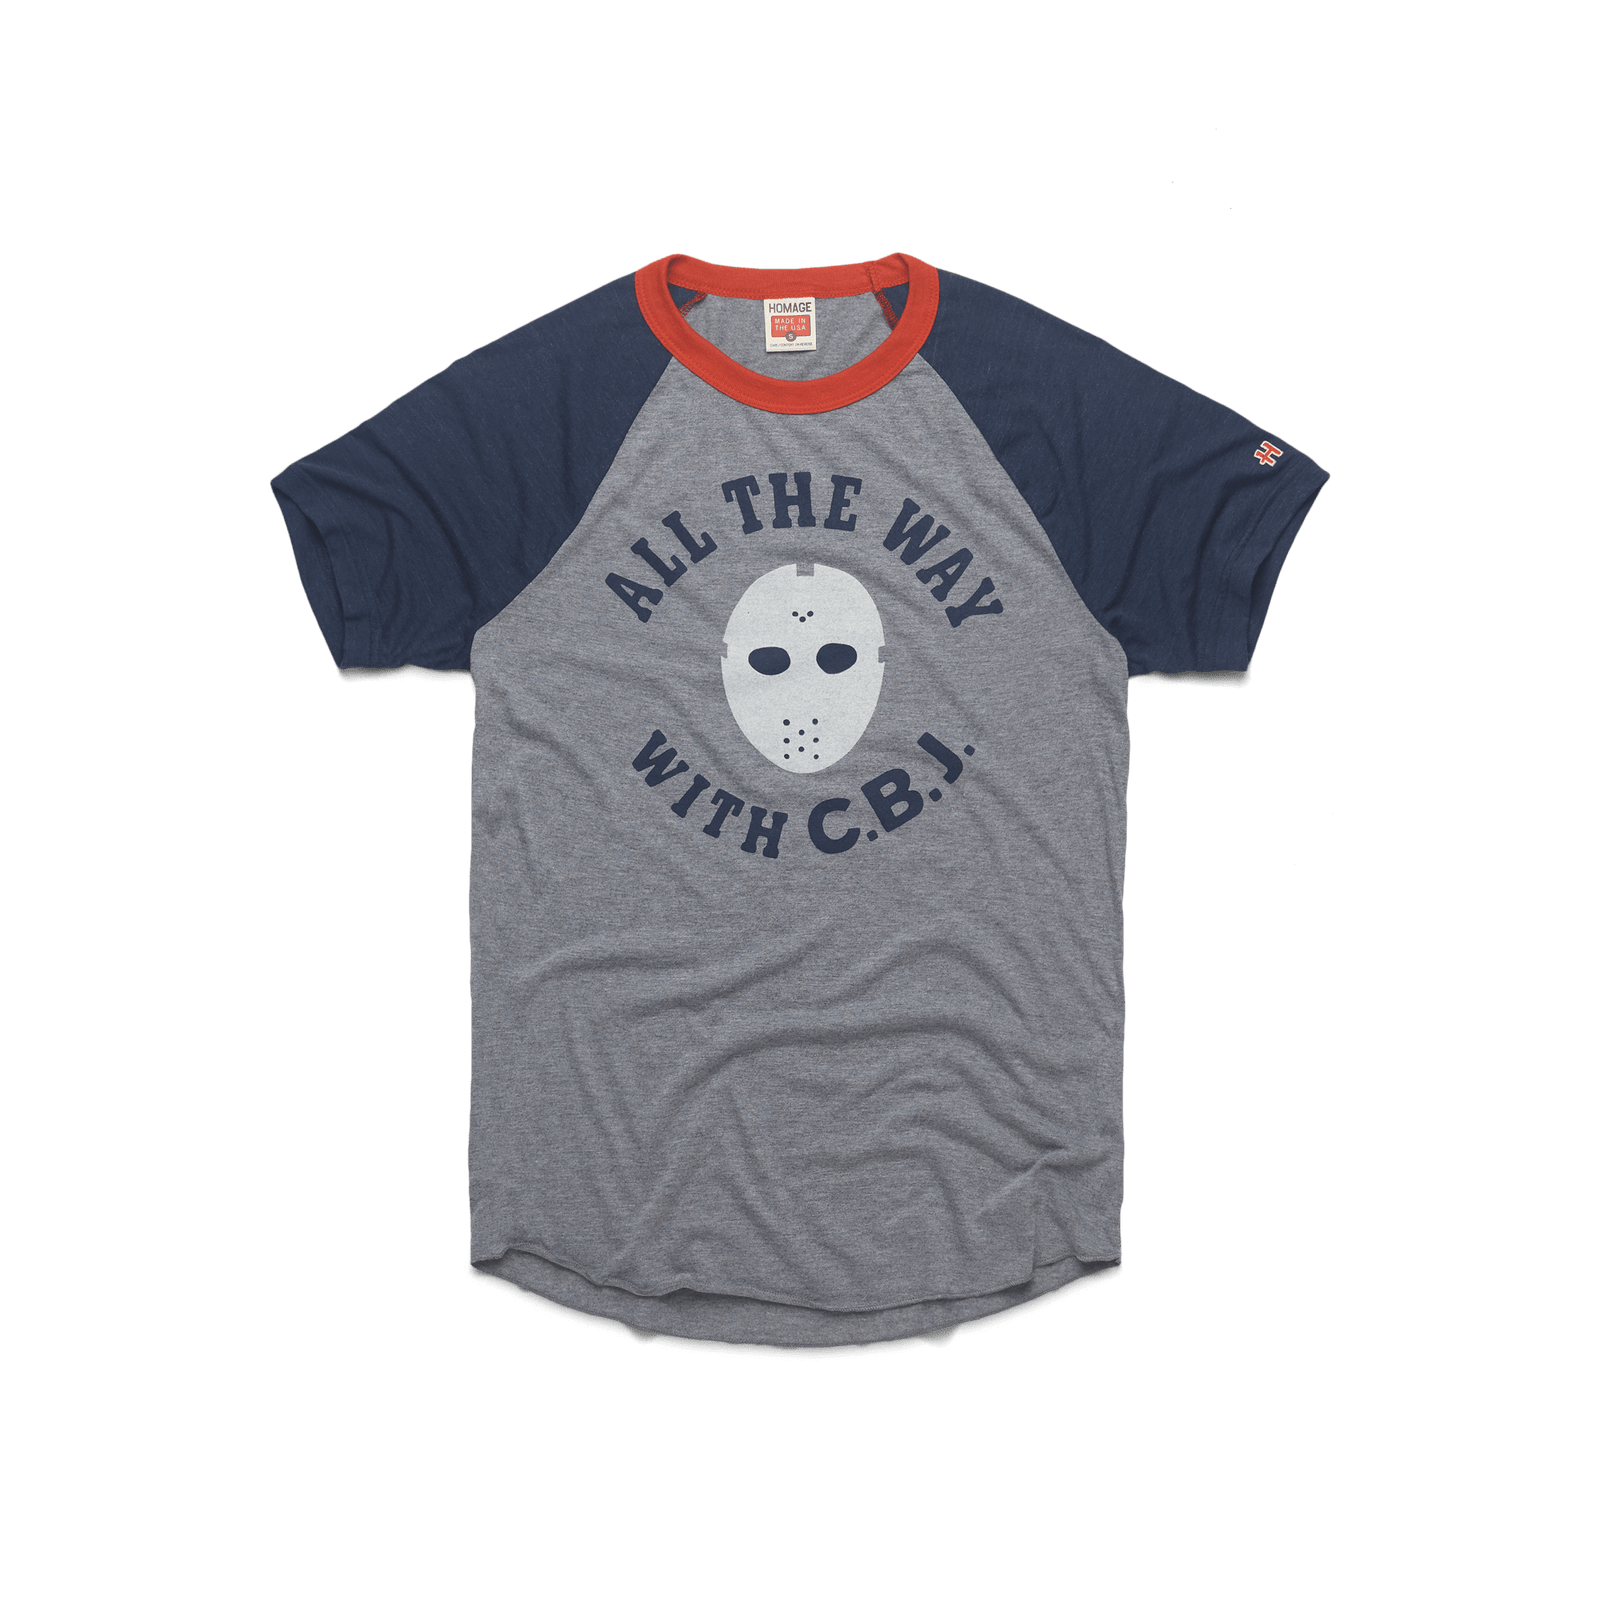 All The Way With CBJ Baseball T-Shirt